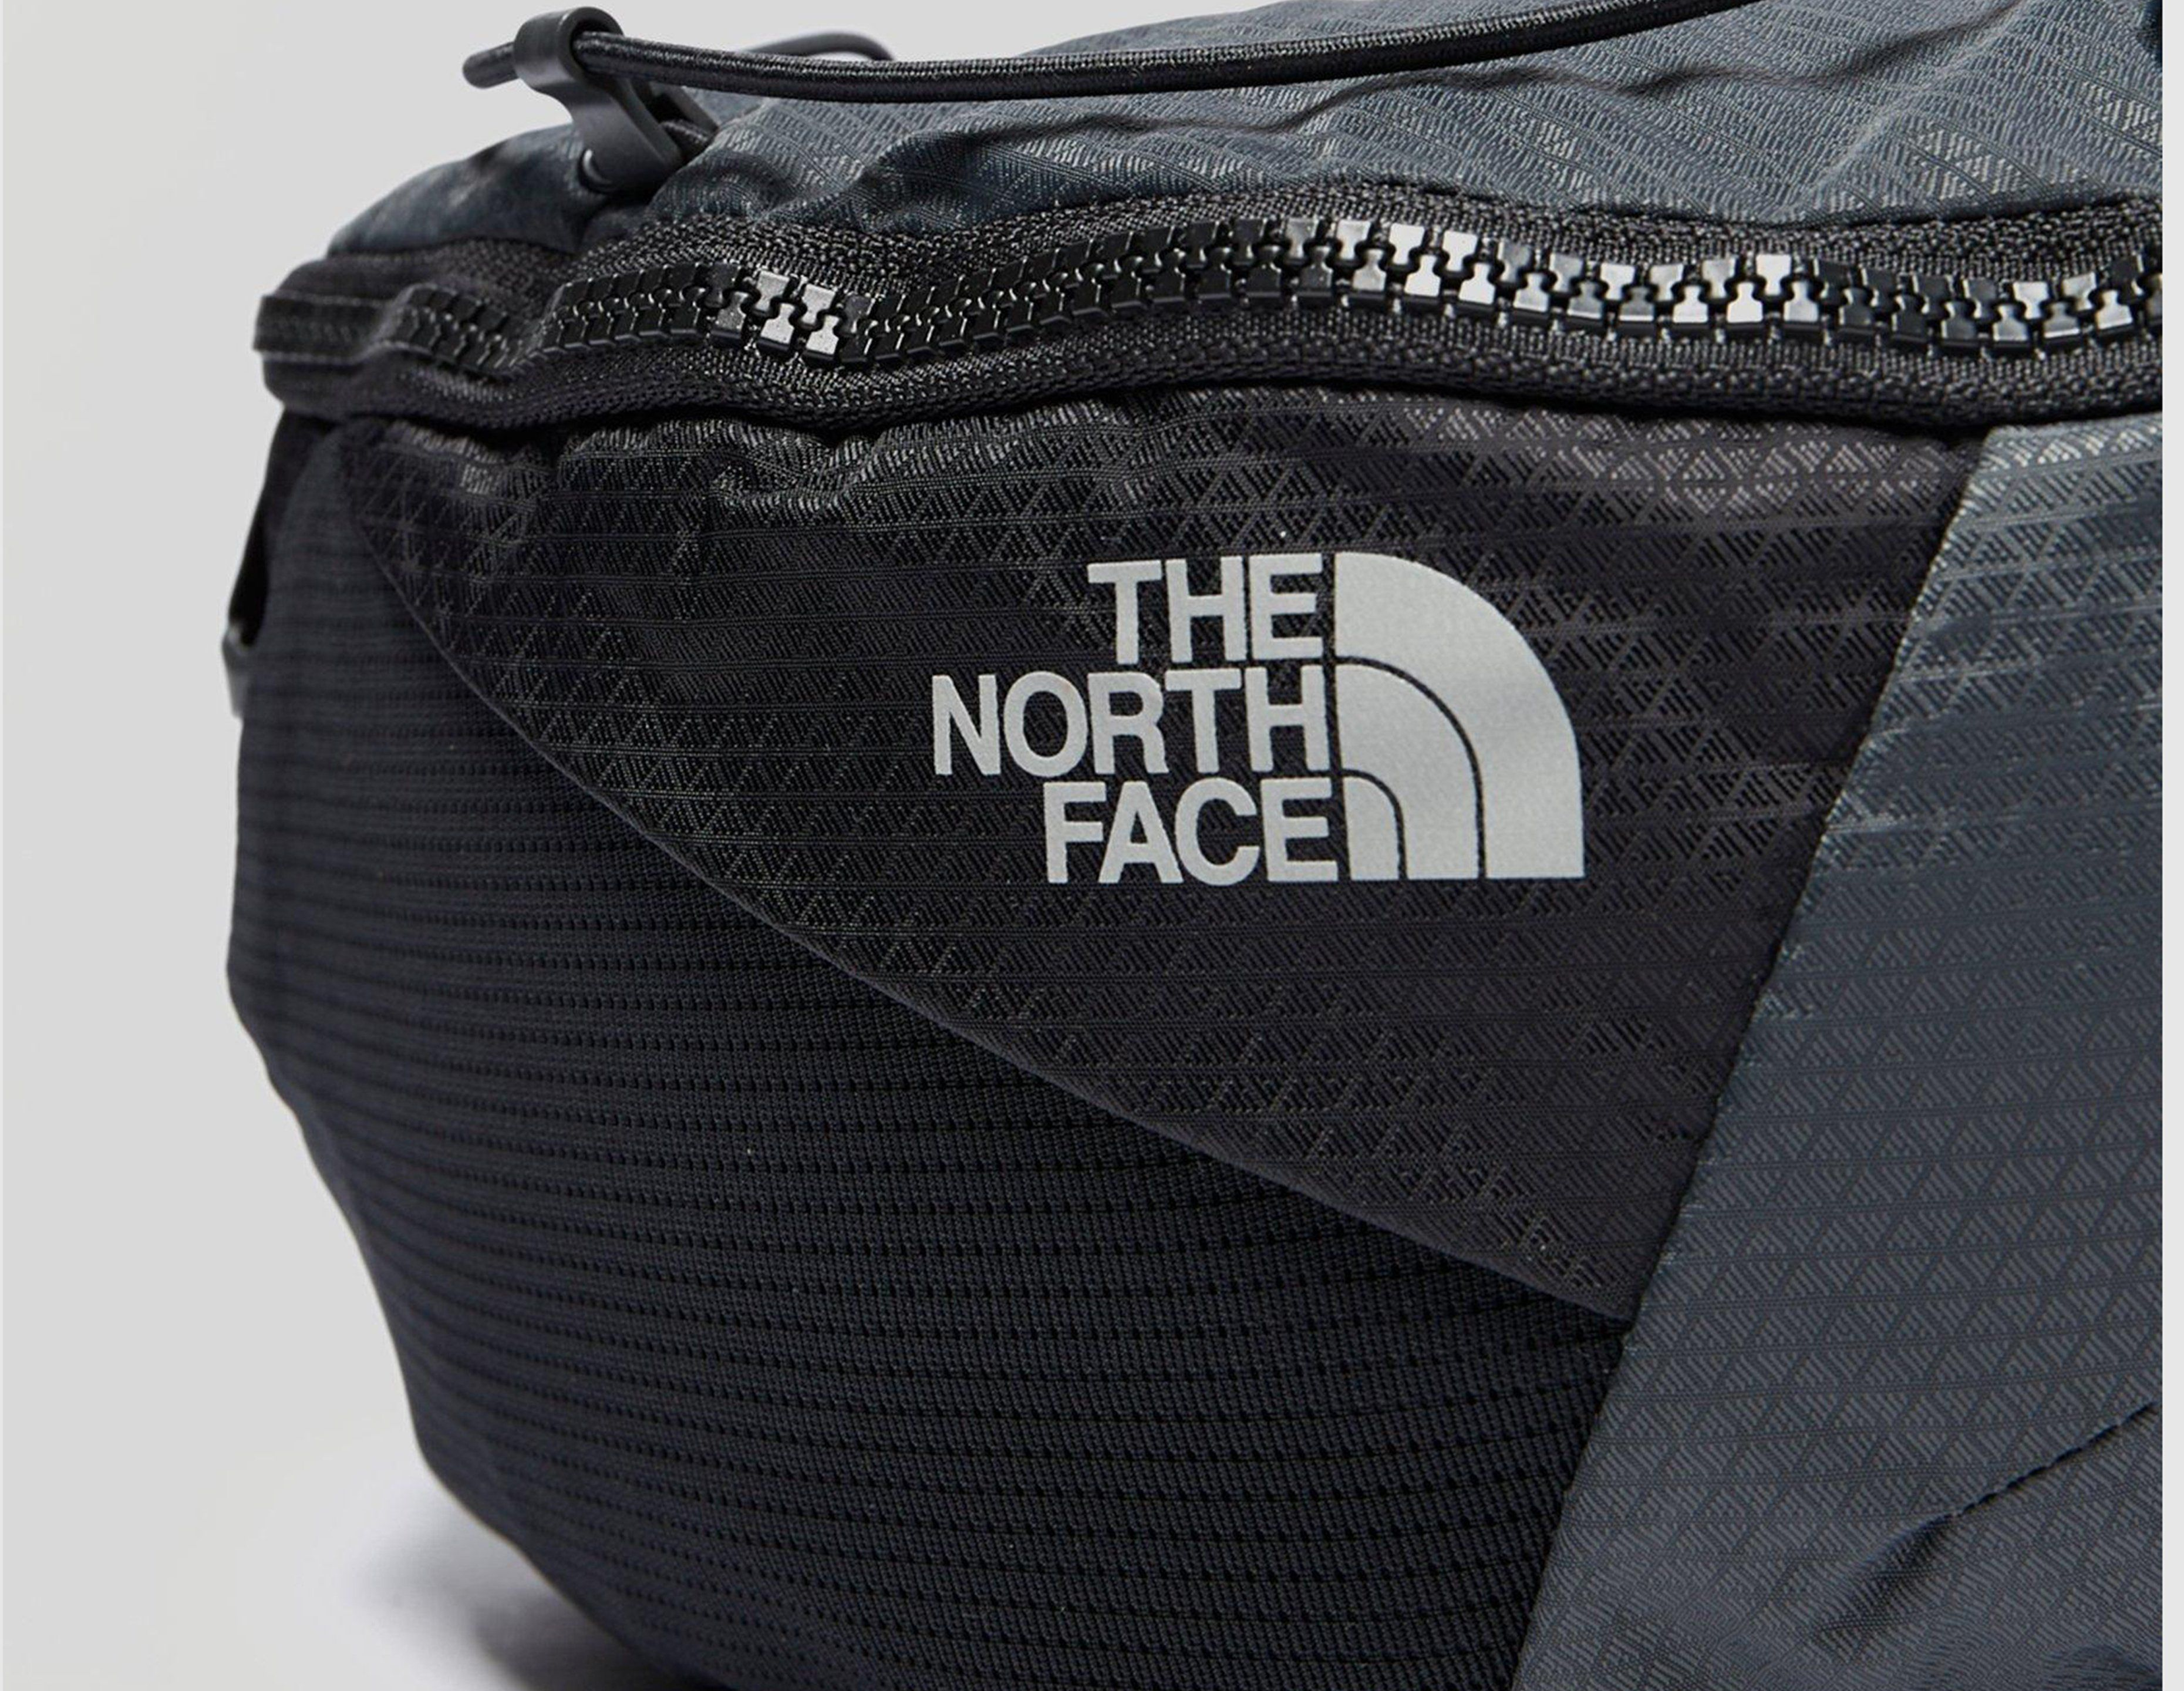 The North Face Lumbnical Lumbar Waist Bag